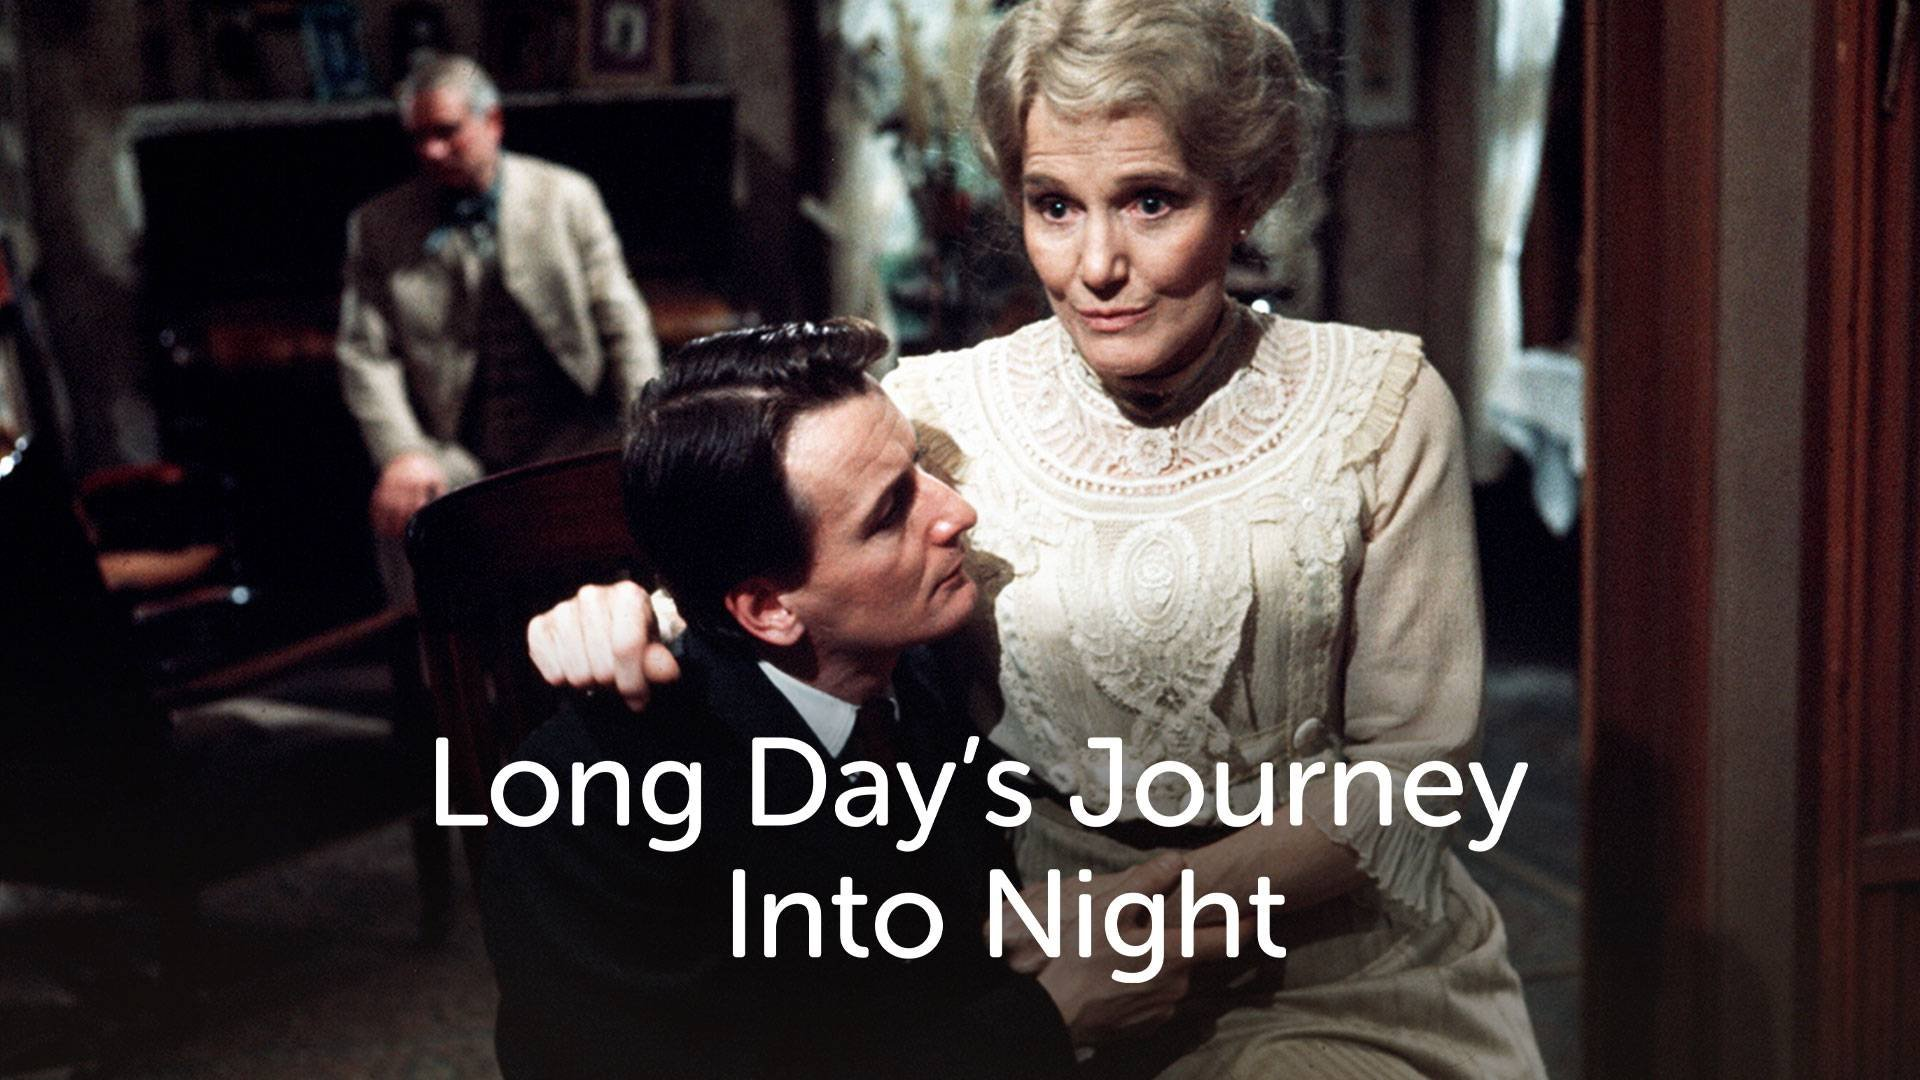 Long Day's Journey Into Night on BritBox UK